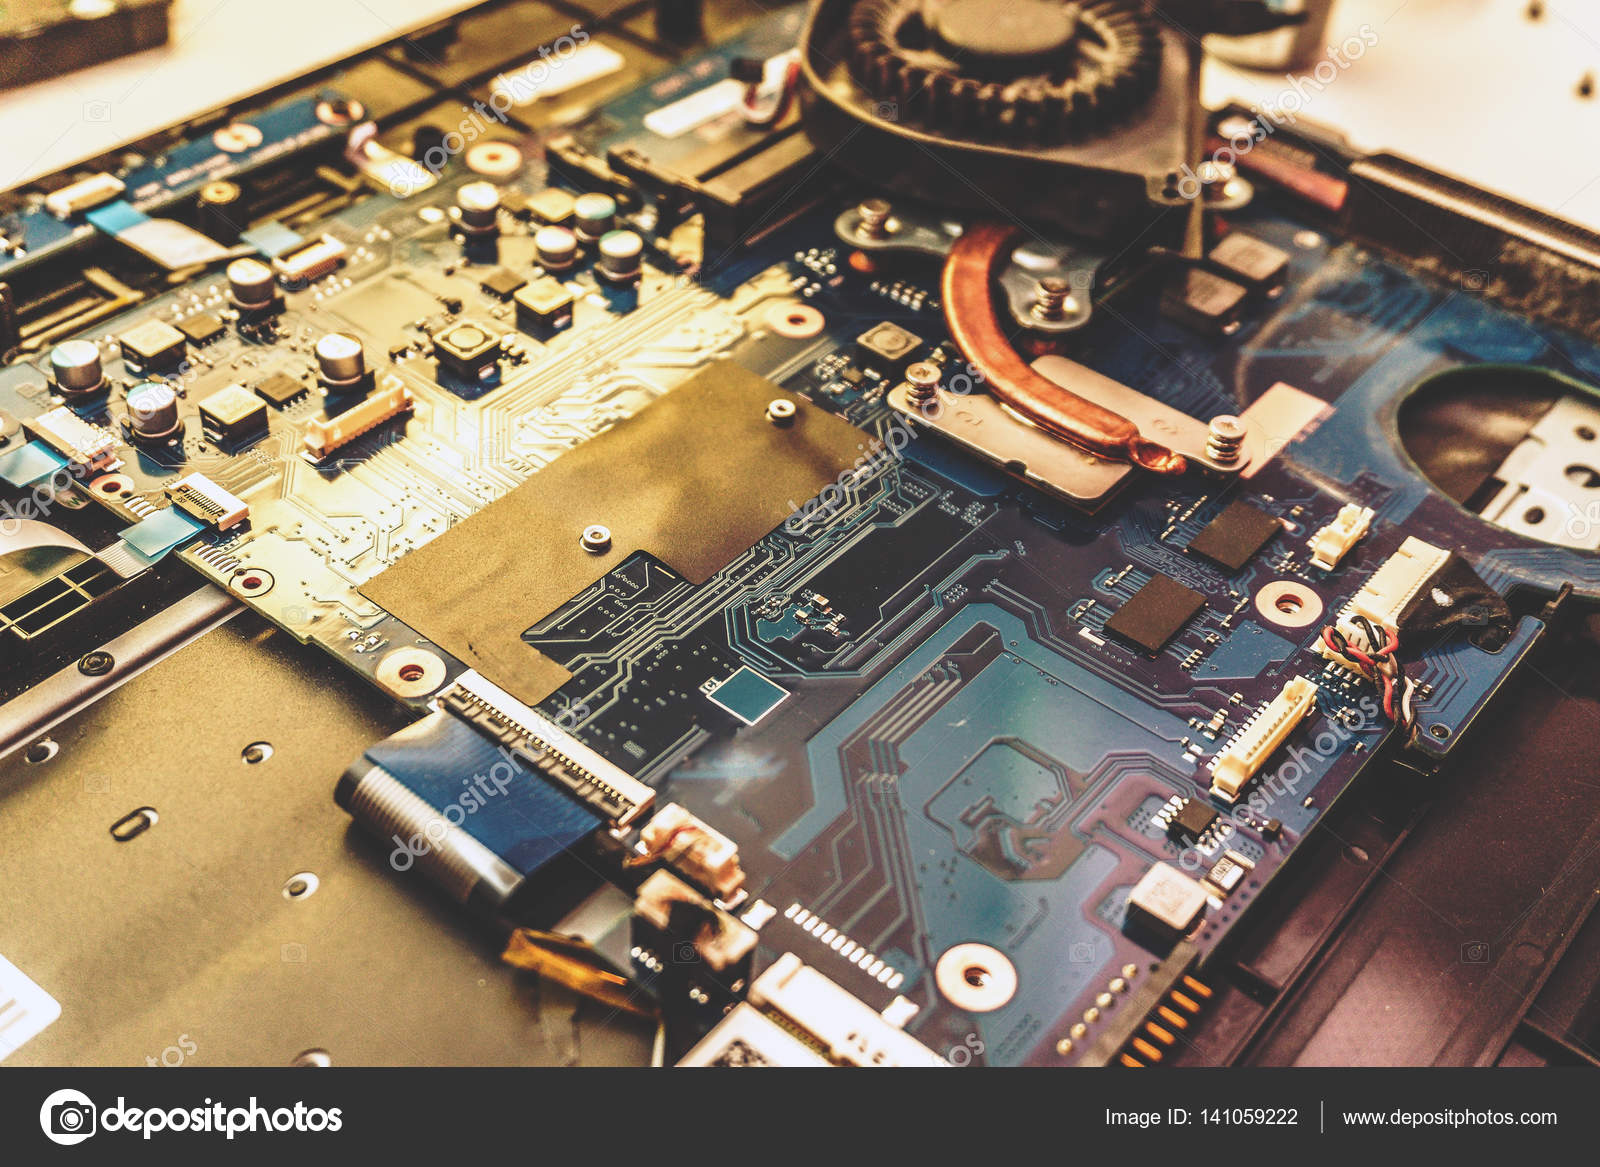 Disassembled Laptop Printed Circuit Board With Many Electrical Green Microchips And Transistors Royalty Components Close Up Image Technology Hardware Electronic Concept Photo By Dedmityay